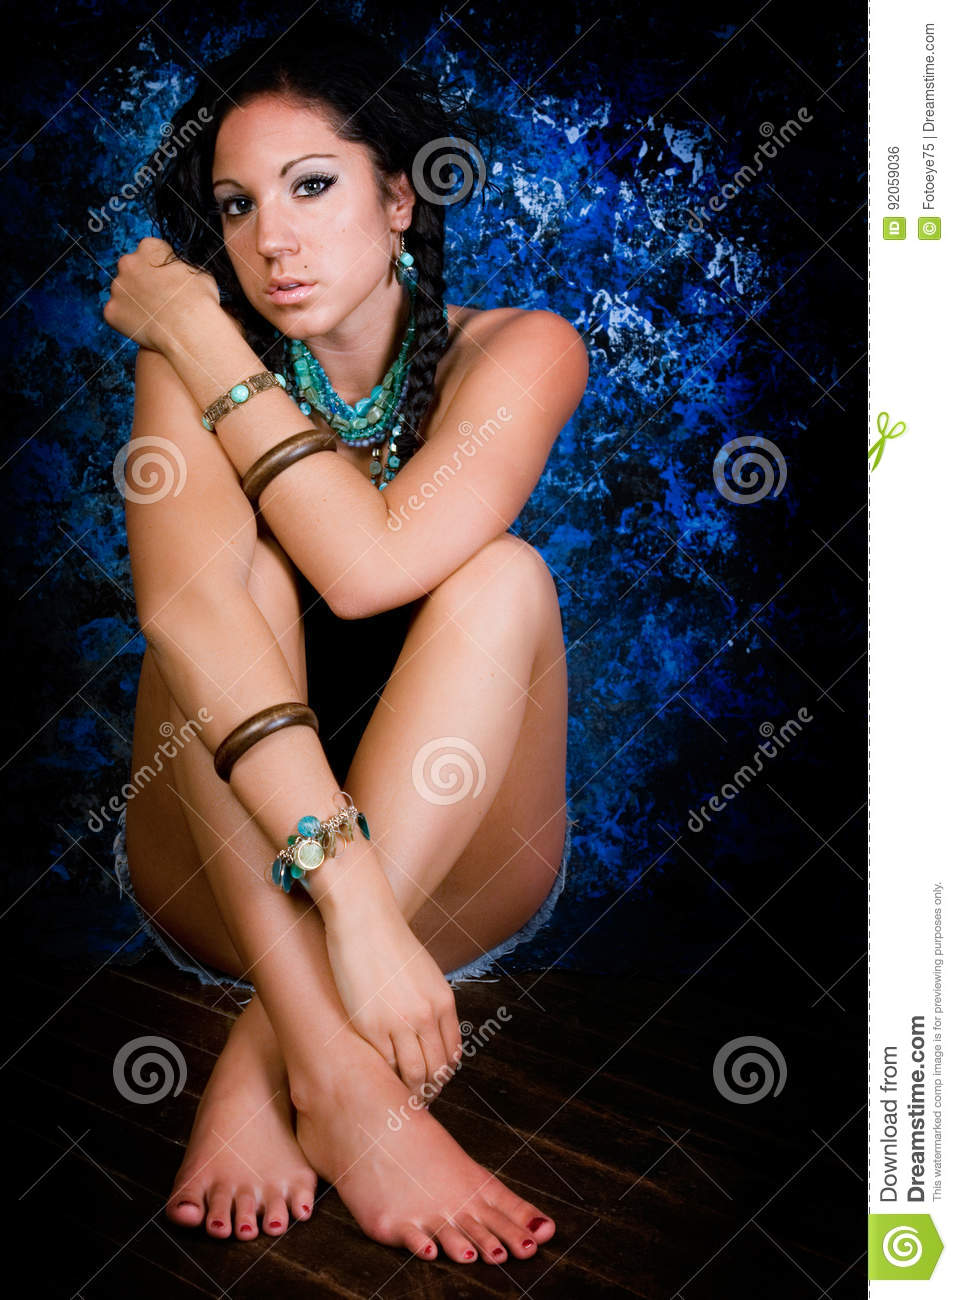 Girl Native American Indian Woman With Braids Stock Photo Image